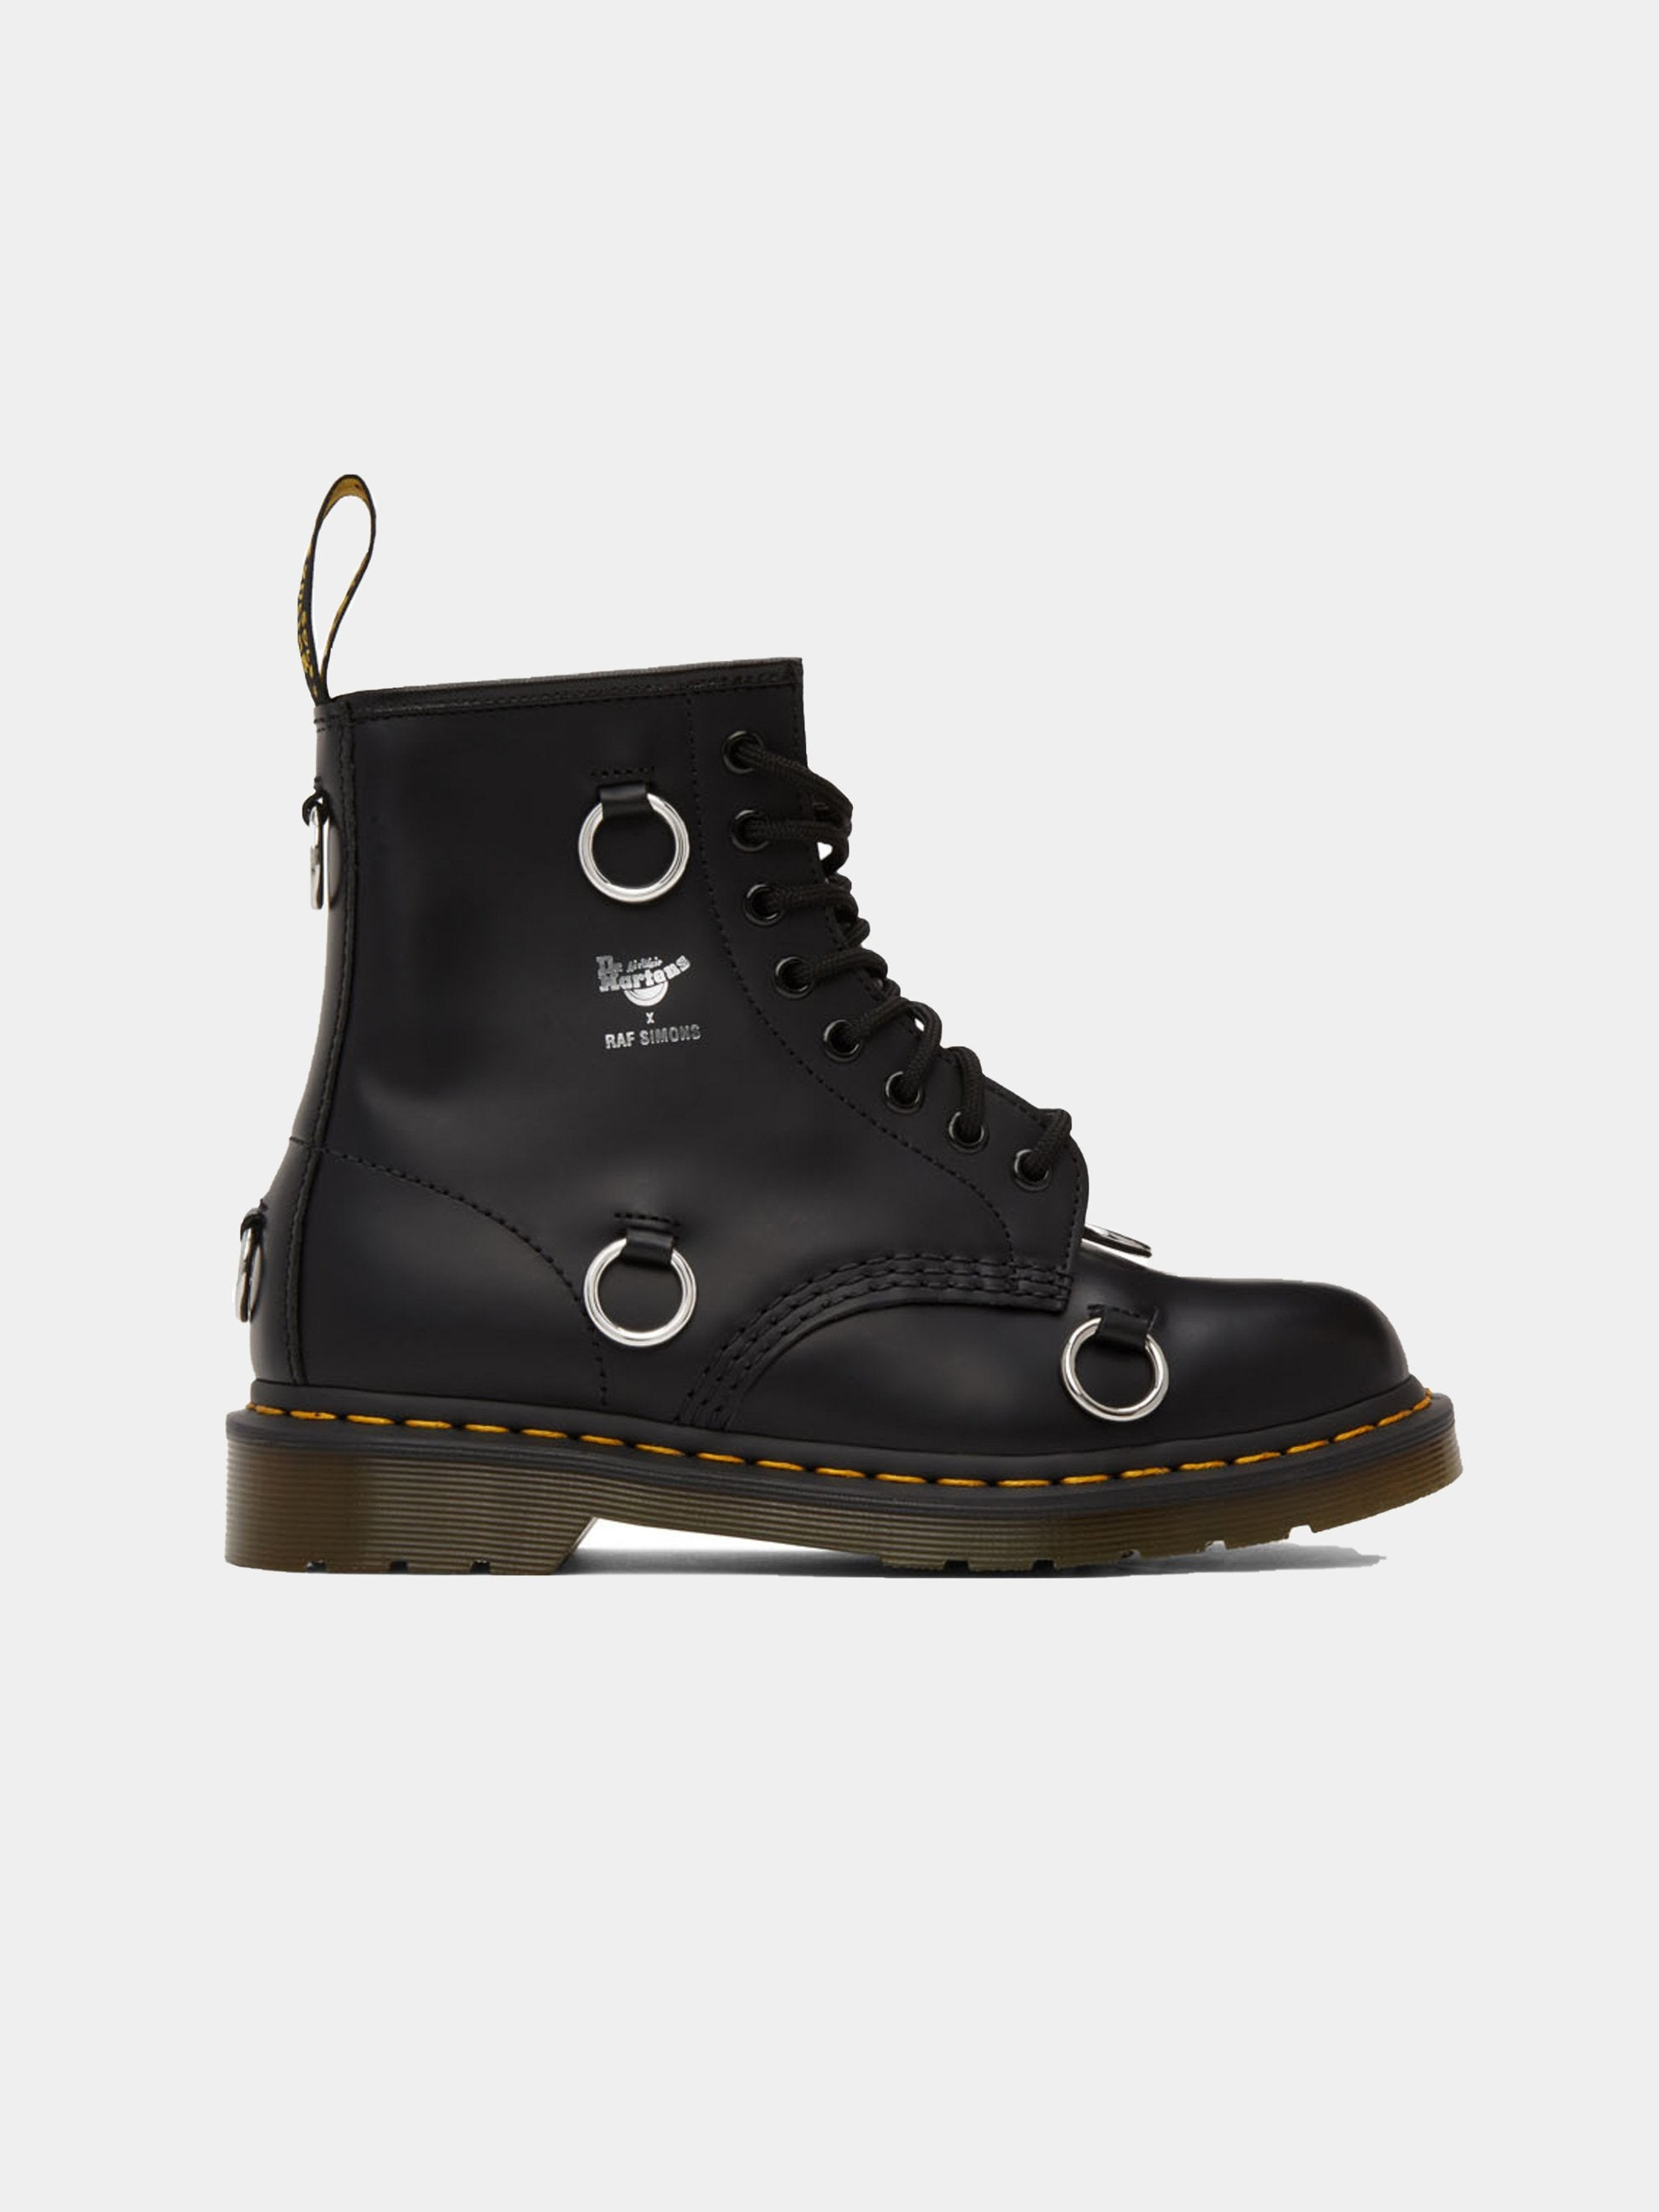 Black Dr. Martens High Boot With Rings 1